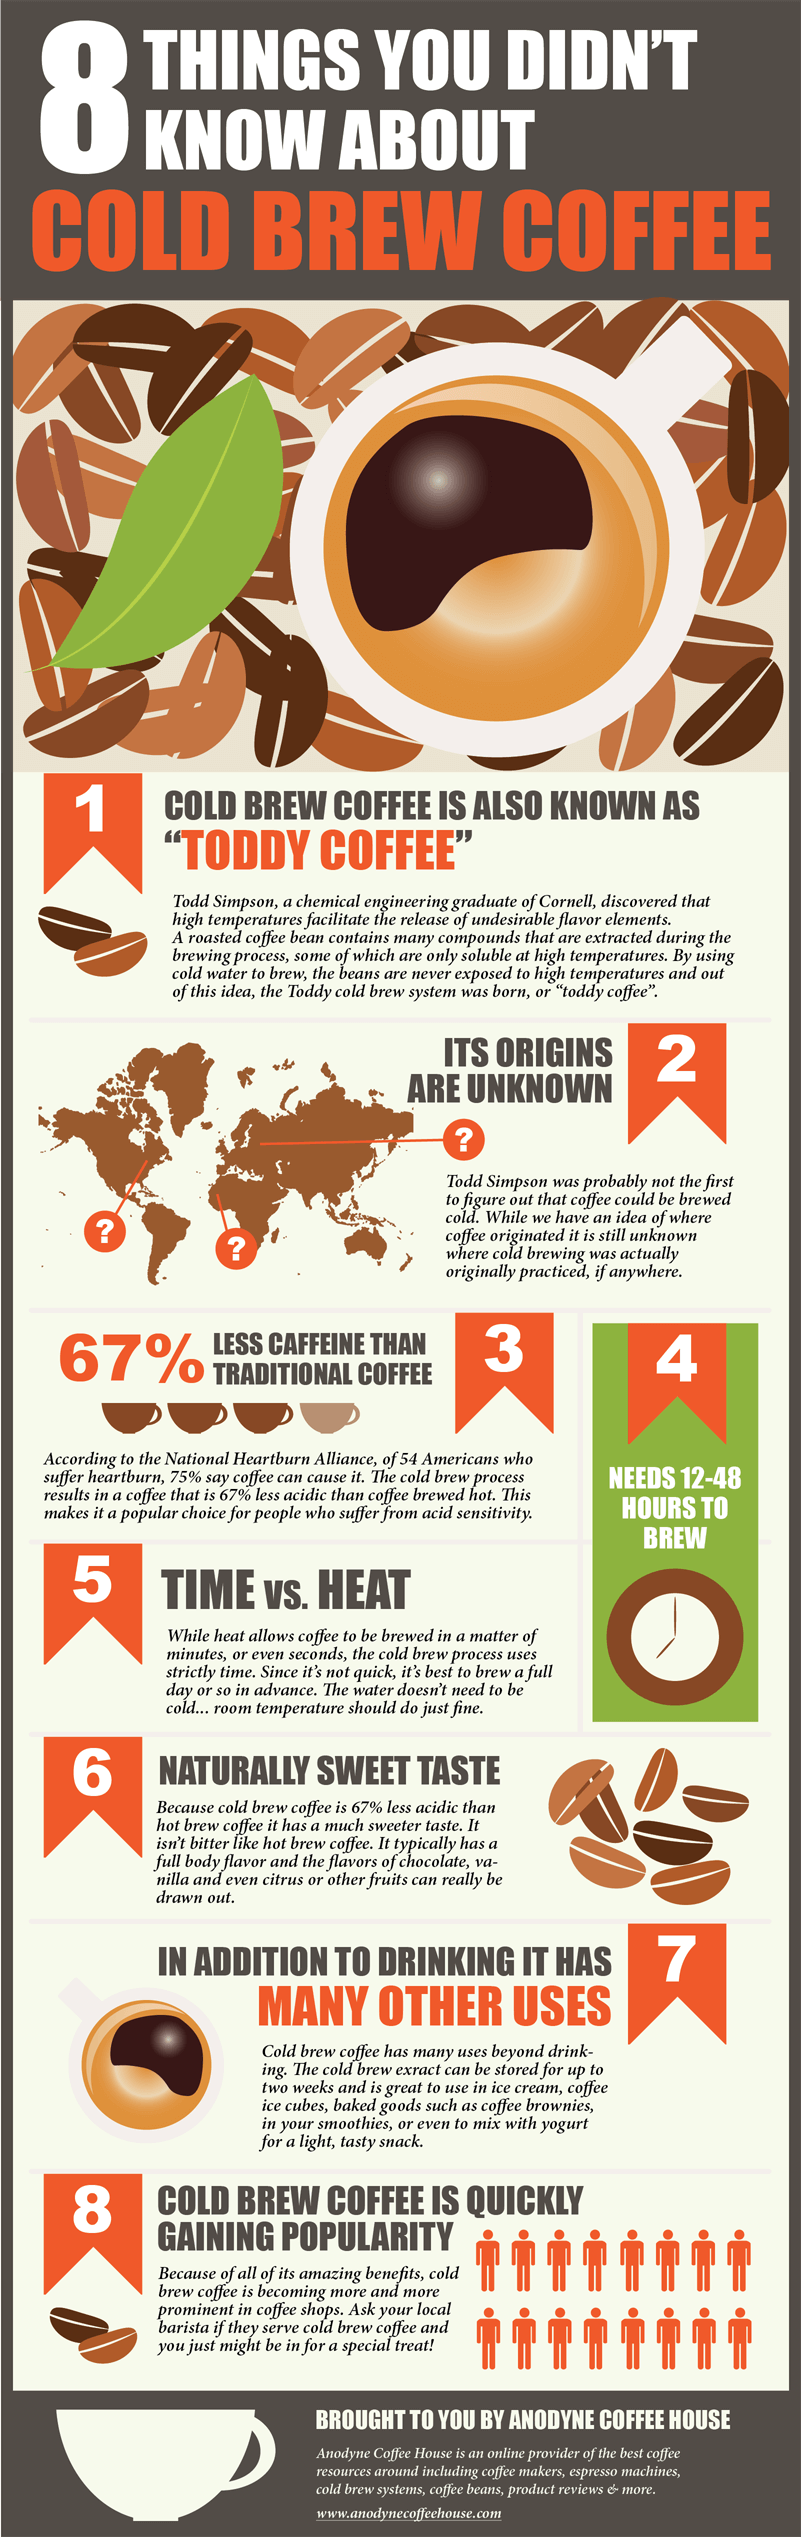 8 Interesting Tidbits About Coffee Brewed Cold